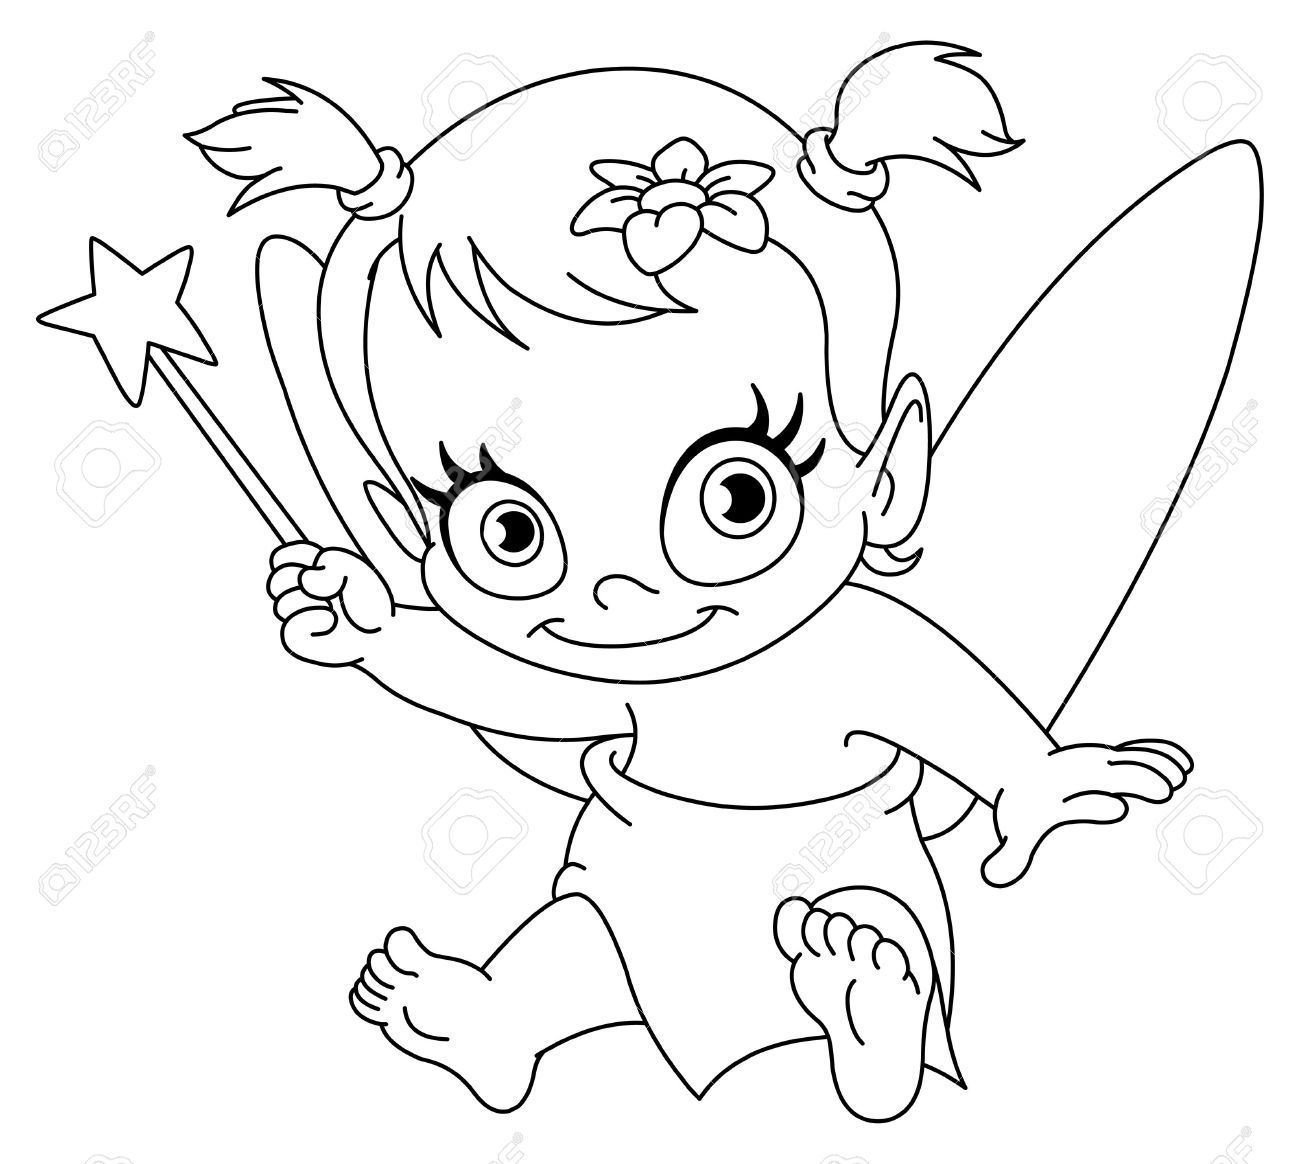 birth-and-newborn-baby-coloring-page-0003-q1